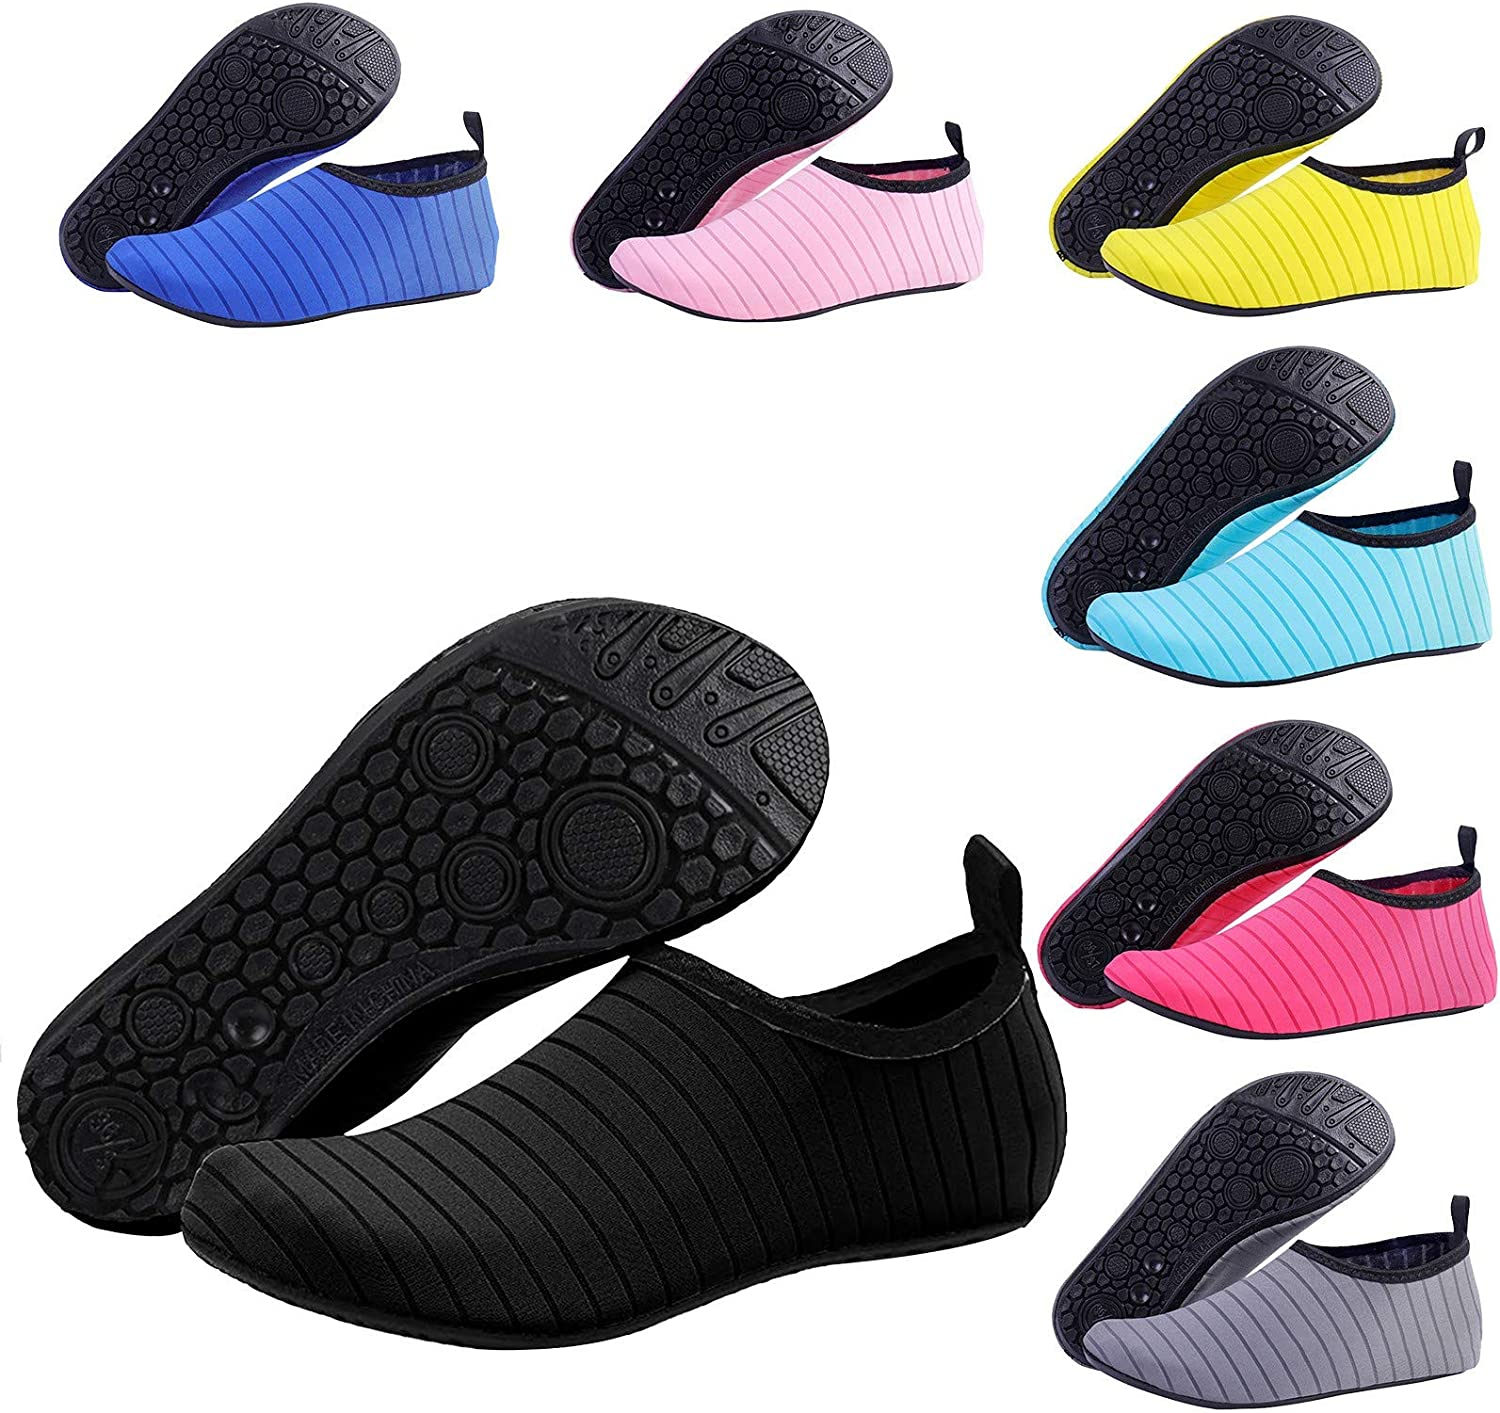 【2021Upgrade】 Water Shoes Aqua Socks for Women & Men Barefoot Quick-Dry Barefoot Shoes Slip-on for Beach Pool Swim Surf Yoga Exercise,Thermoplastic Rubber Sole (L:7.5-8.5 Women/6.5-7.5 Men, Black)